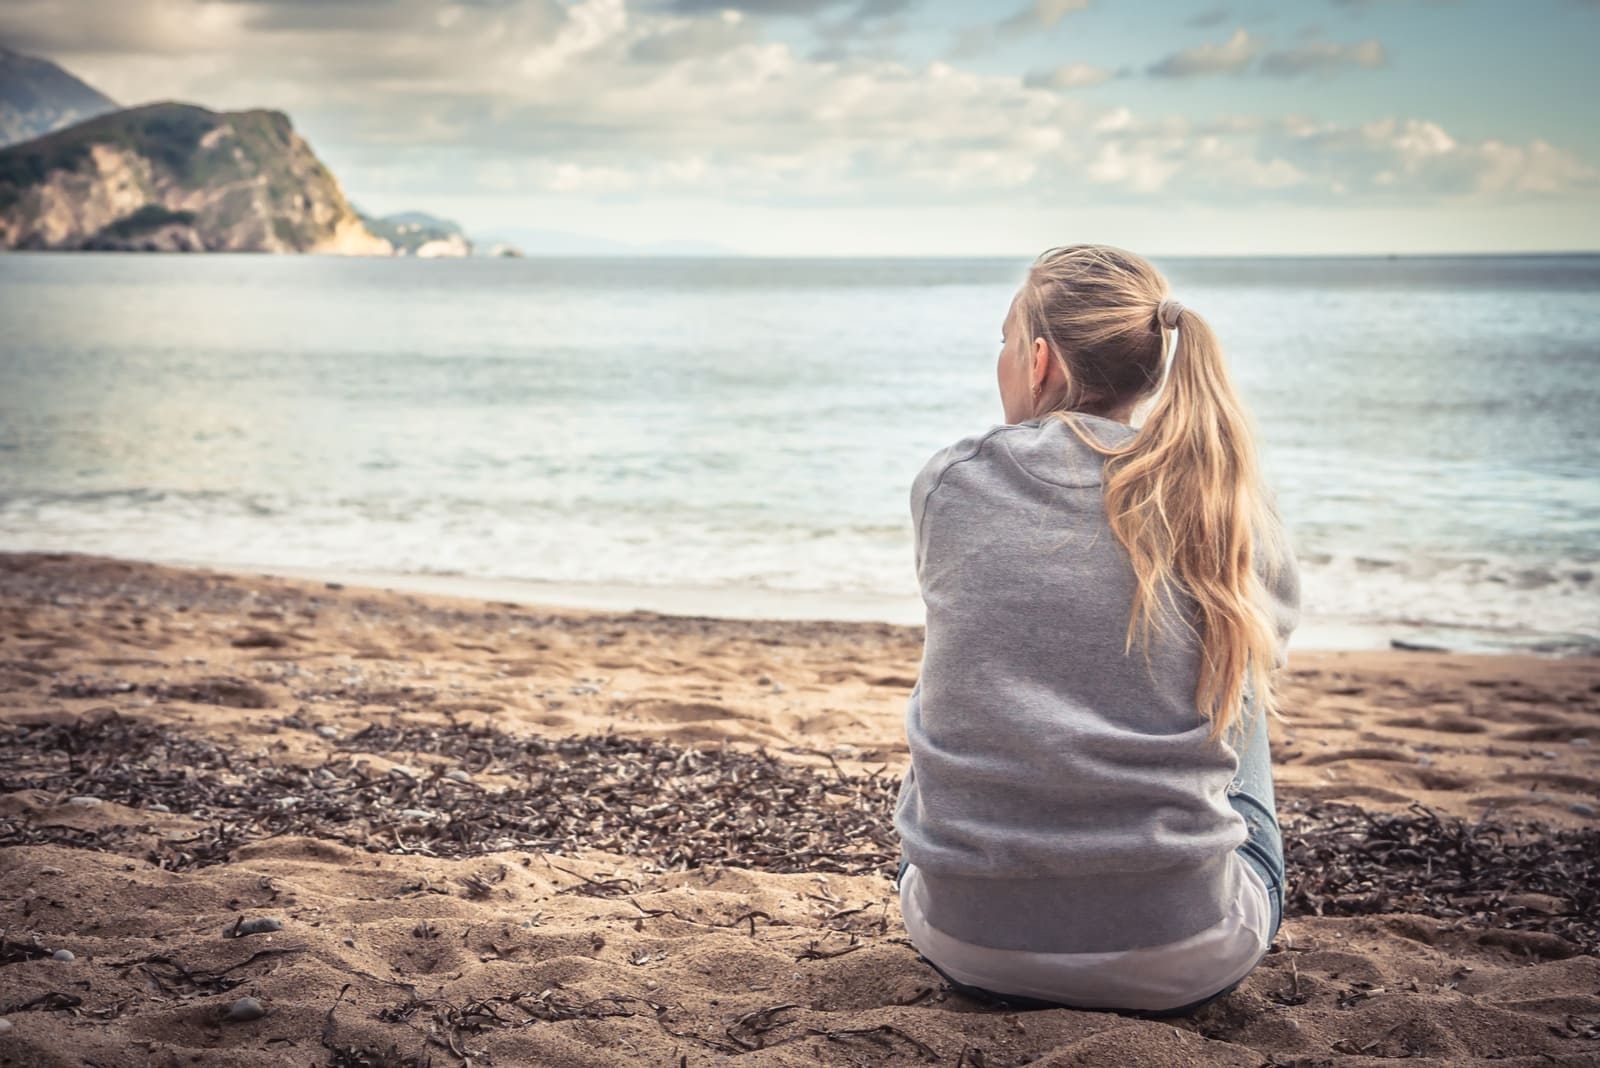 lonely young woman sitting on beach